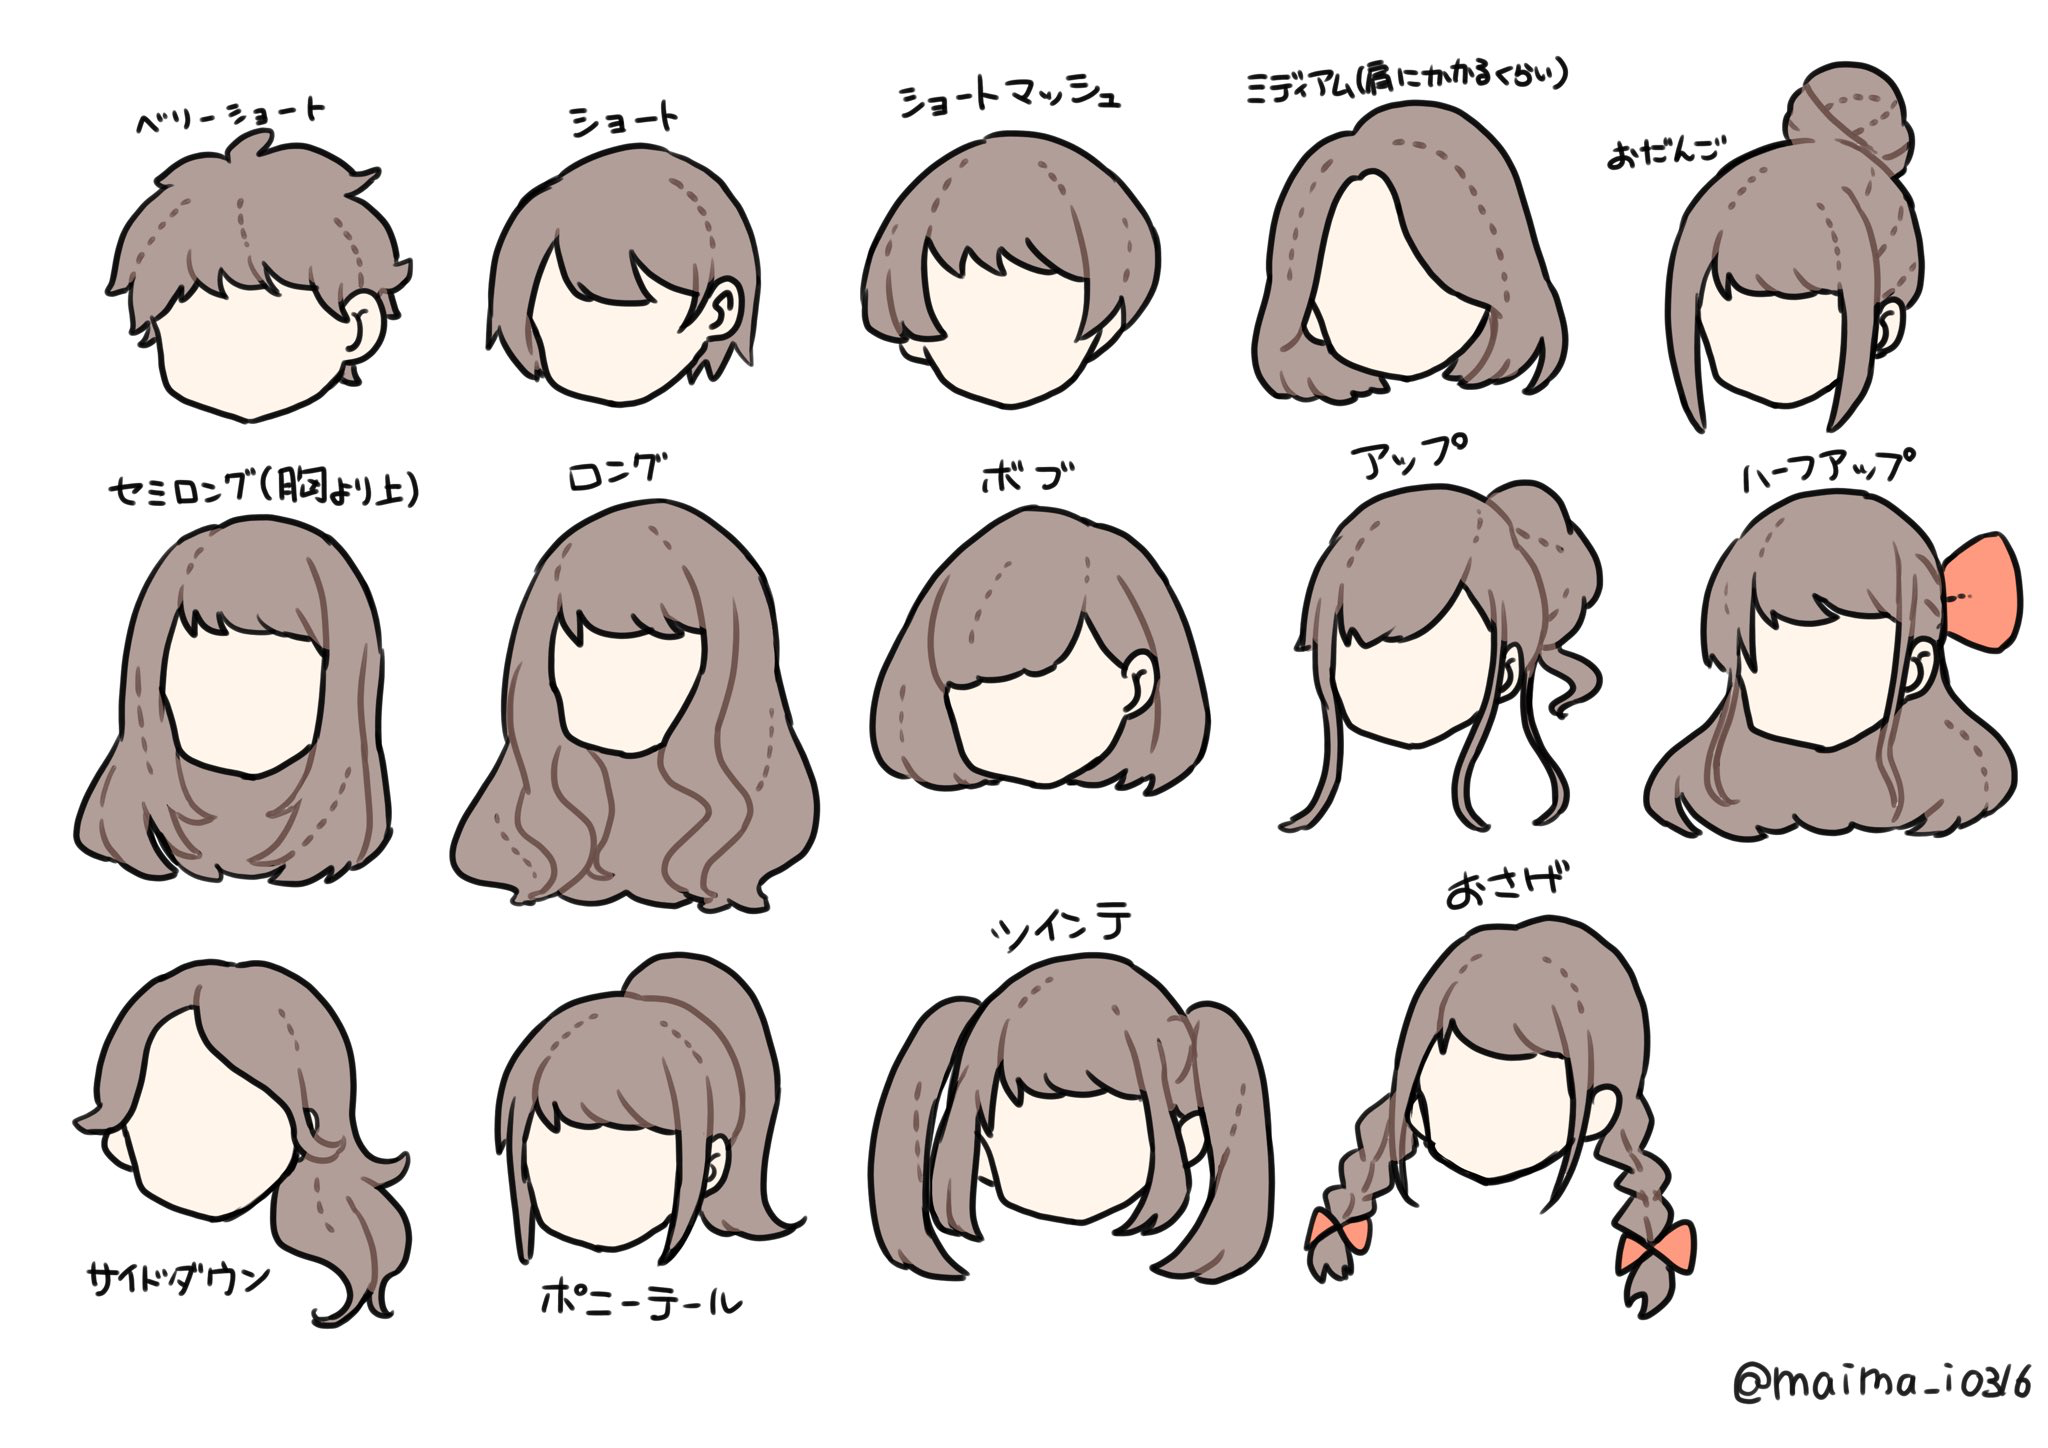 Yi S Hair Cartoon Hair Cartoon Art Styles Anime Drawings Sketches